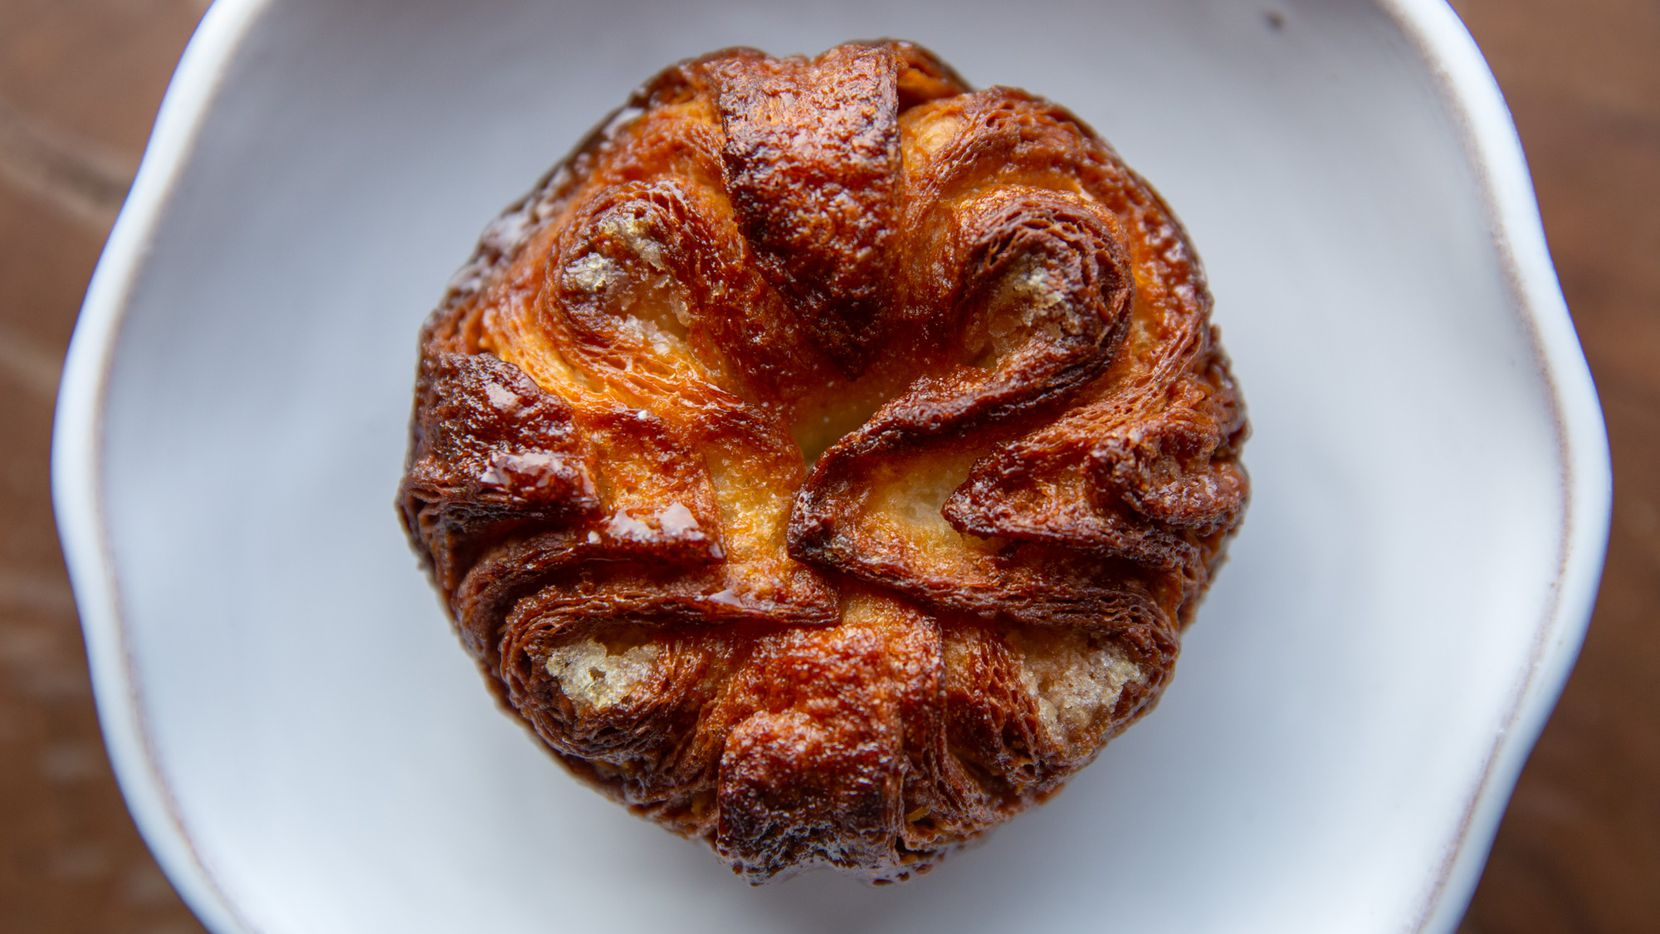 A kouign-amann pastry cooked by Matt Bresnan of Bresnan Bread and Pastry